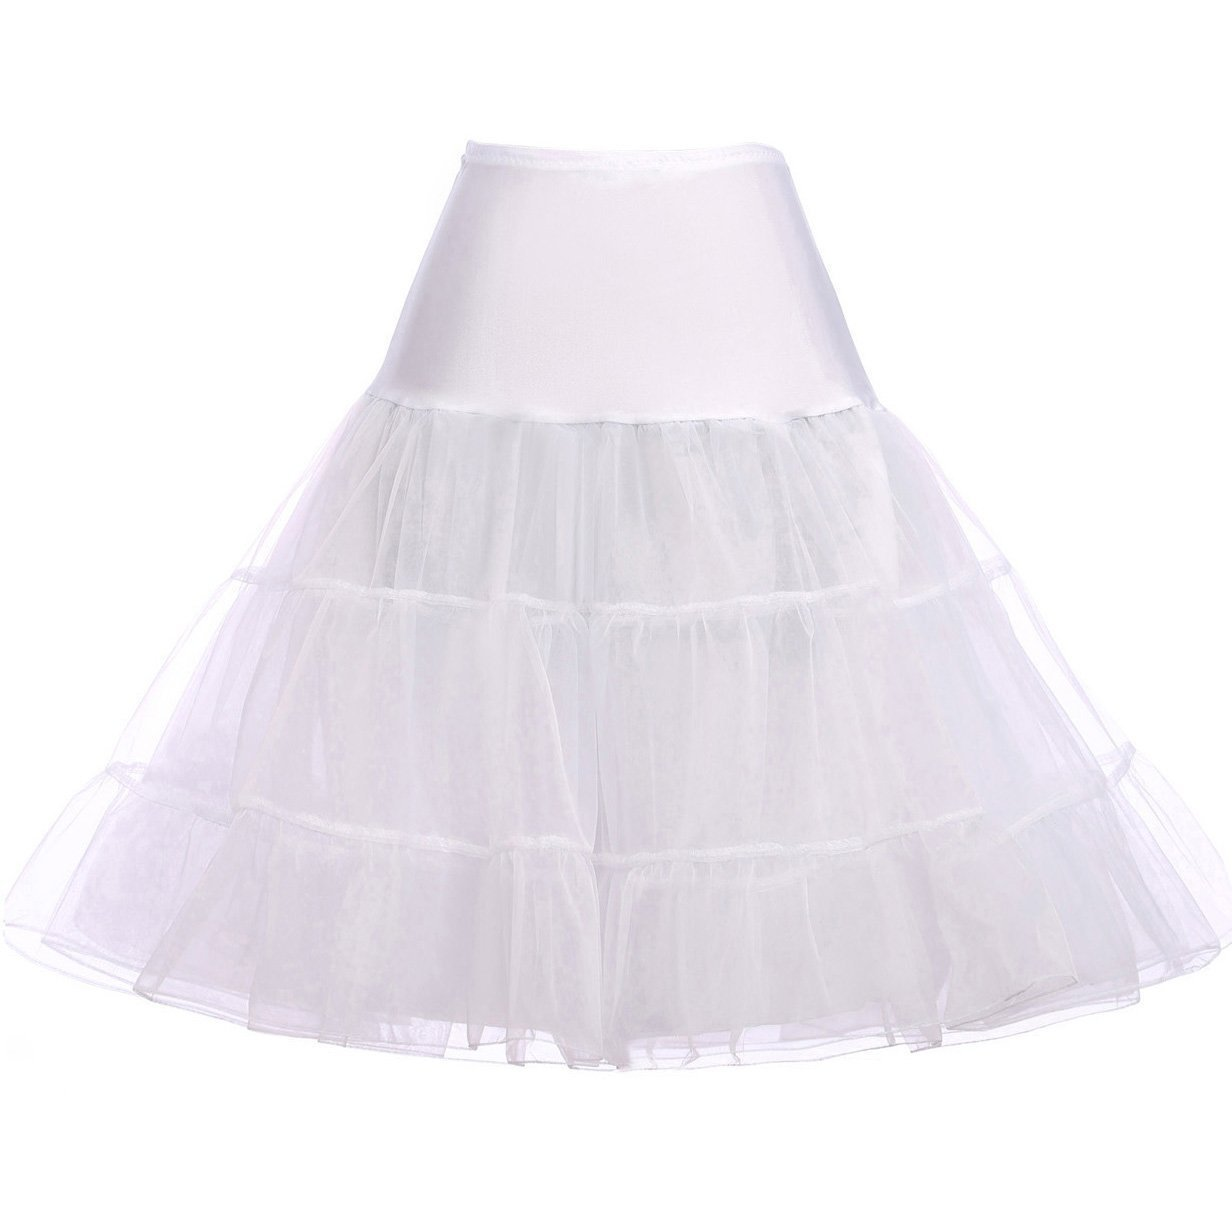 Paul Jones®Dress Women 50s Petticoat Skirts Tutu Crinoline Underskirt Plus Size by GRACE KARIN